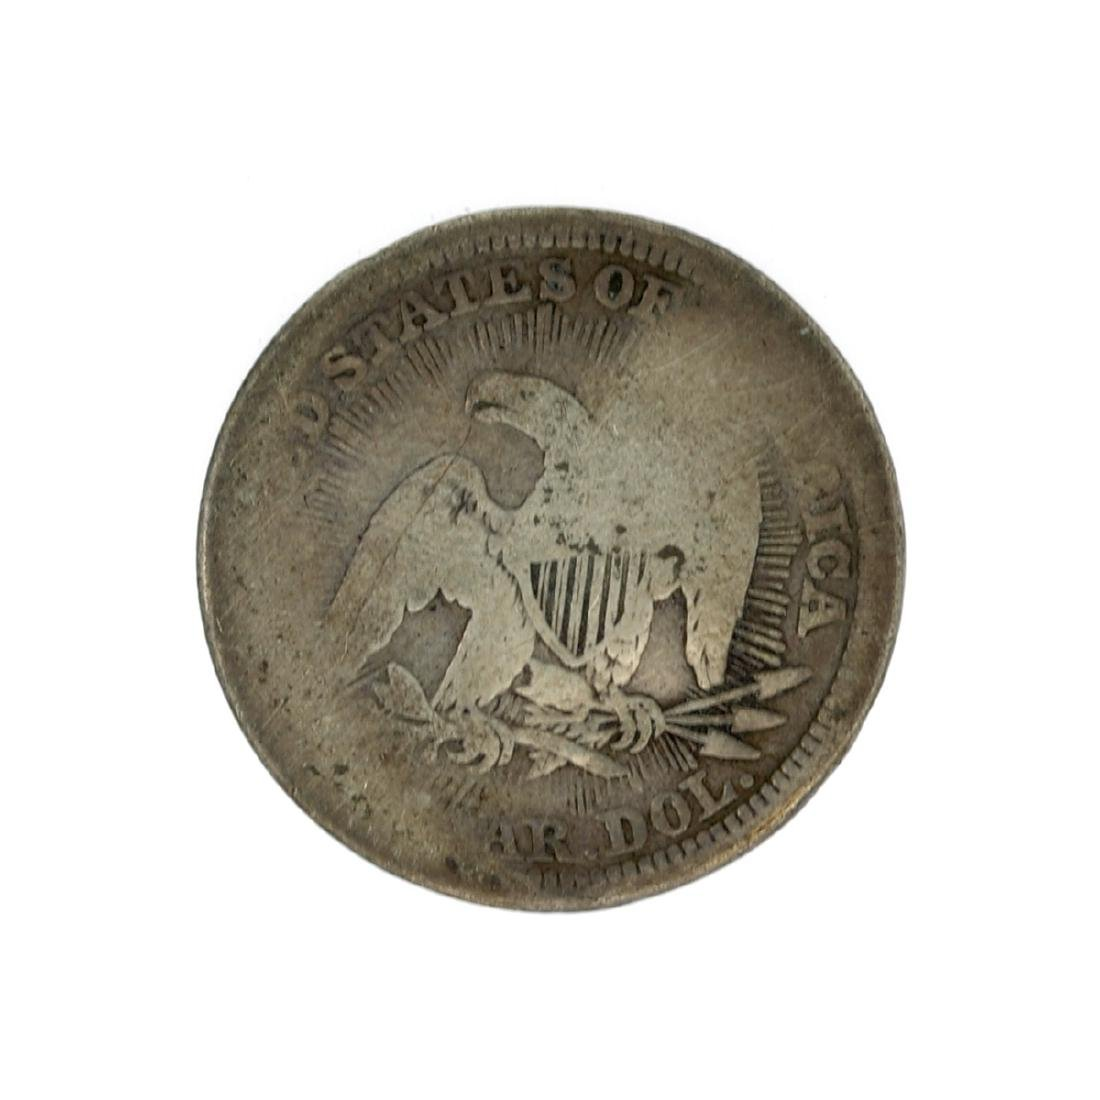 1853 Liberty Seated Arrows At Date, Rays Around Eagle - 2